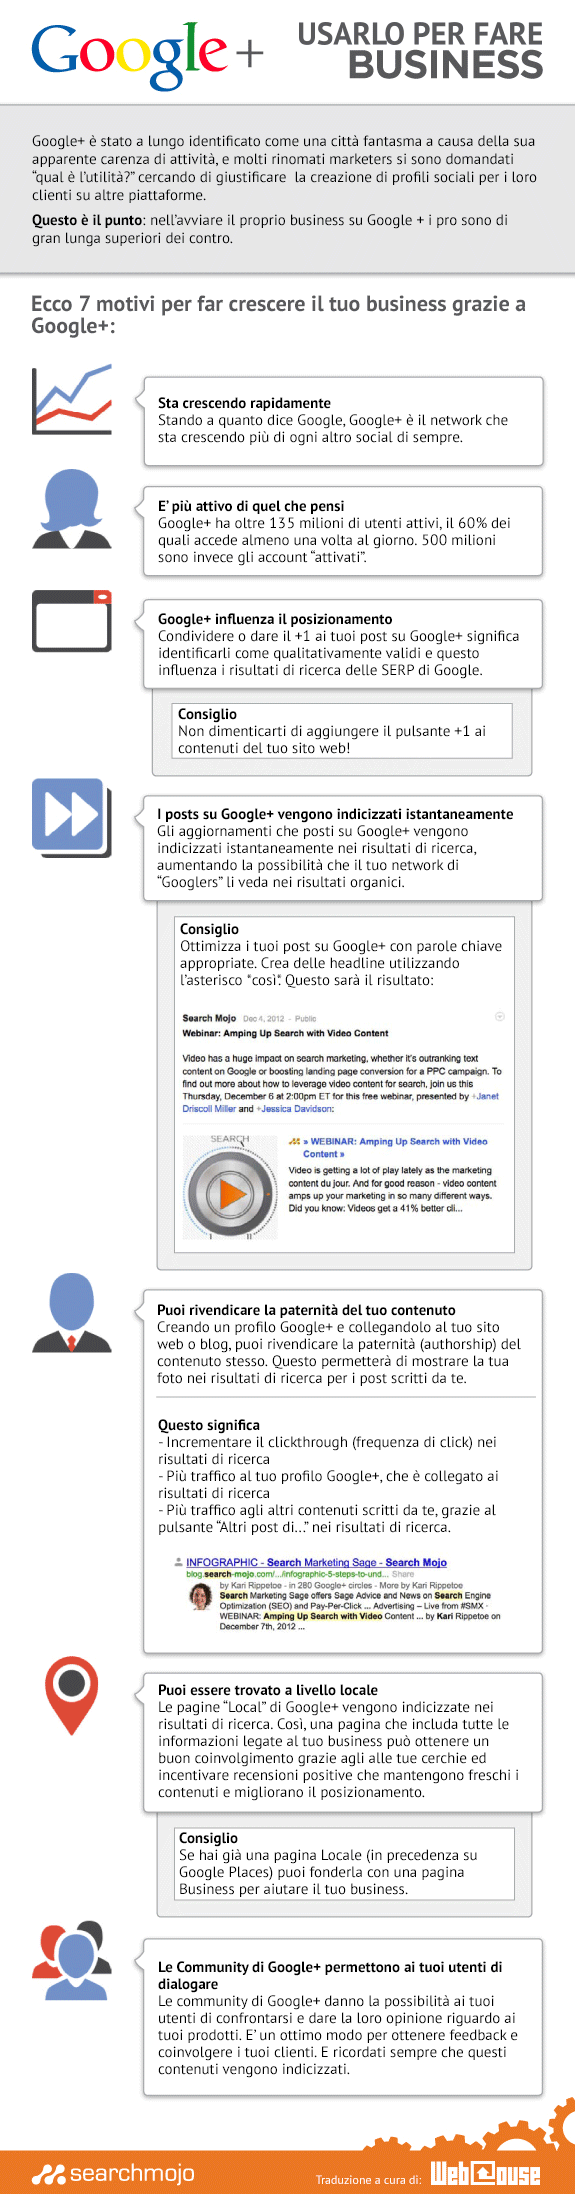 Google Plus per fare Business